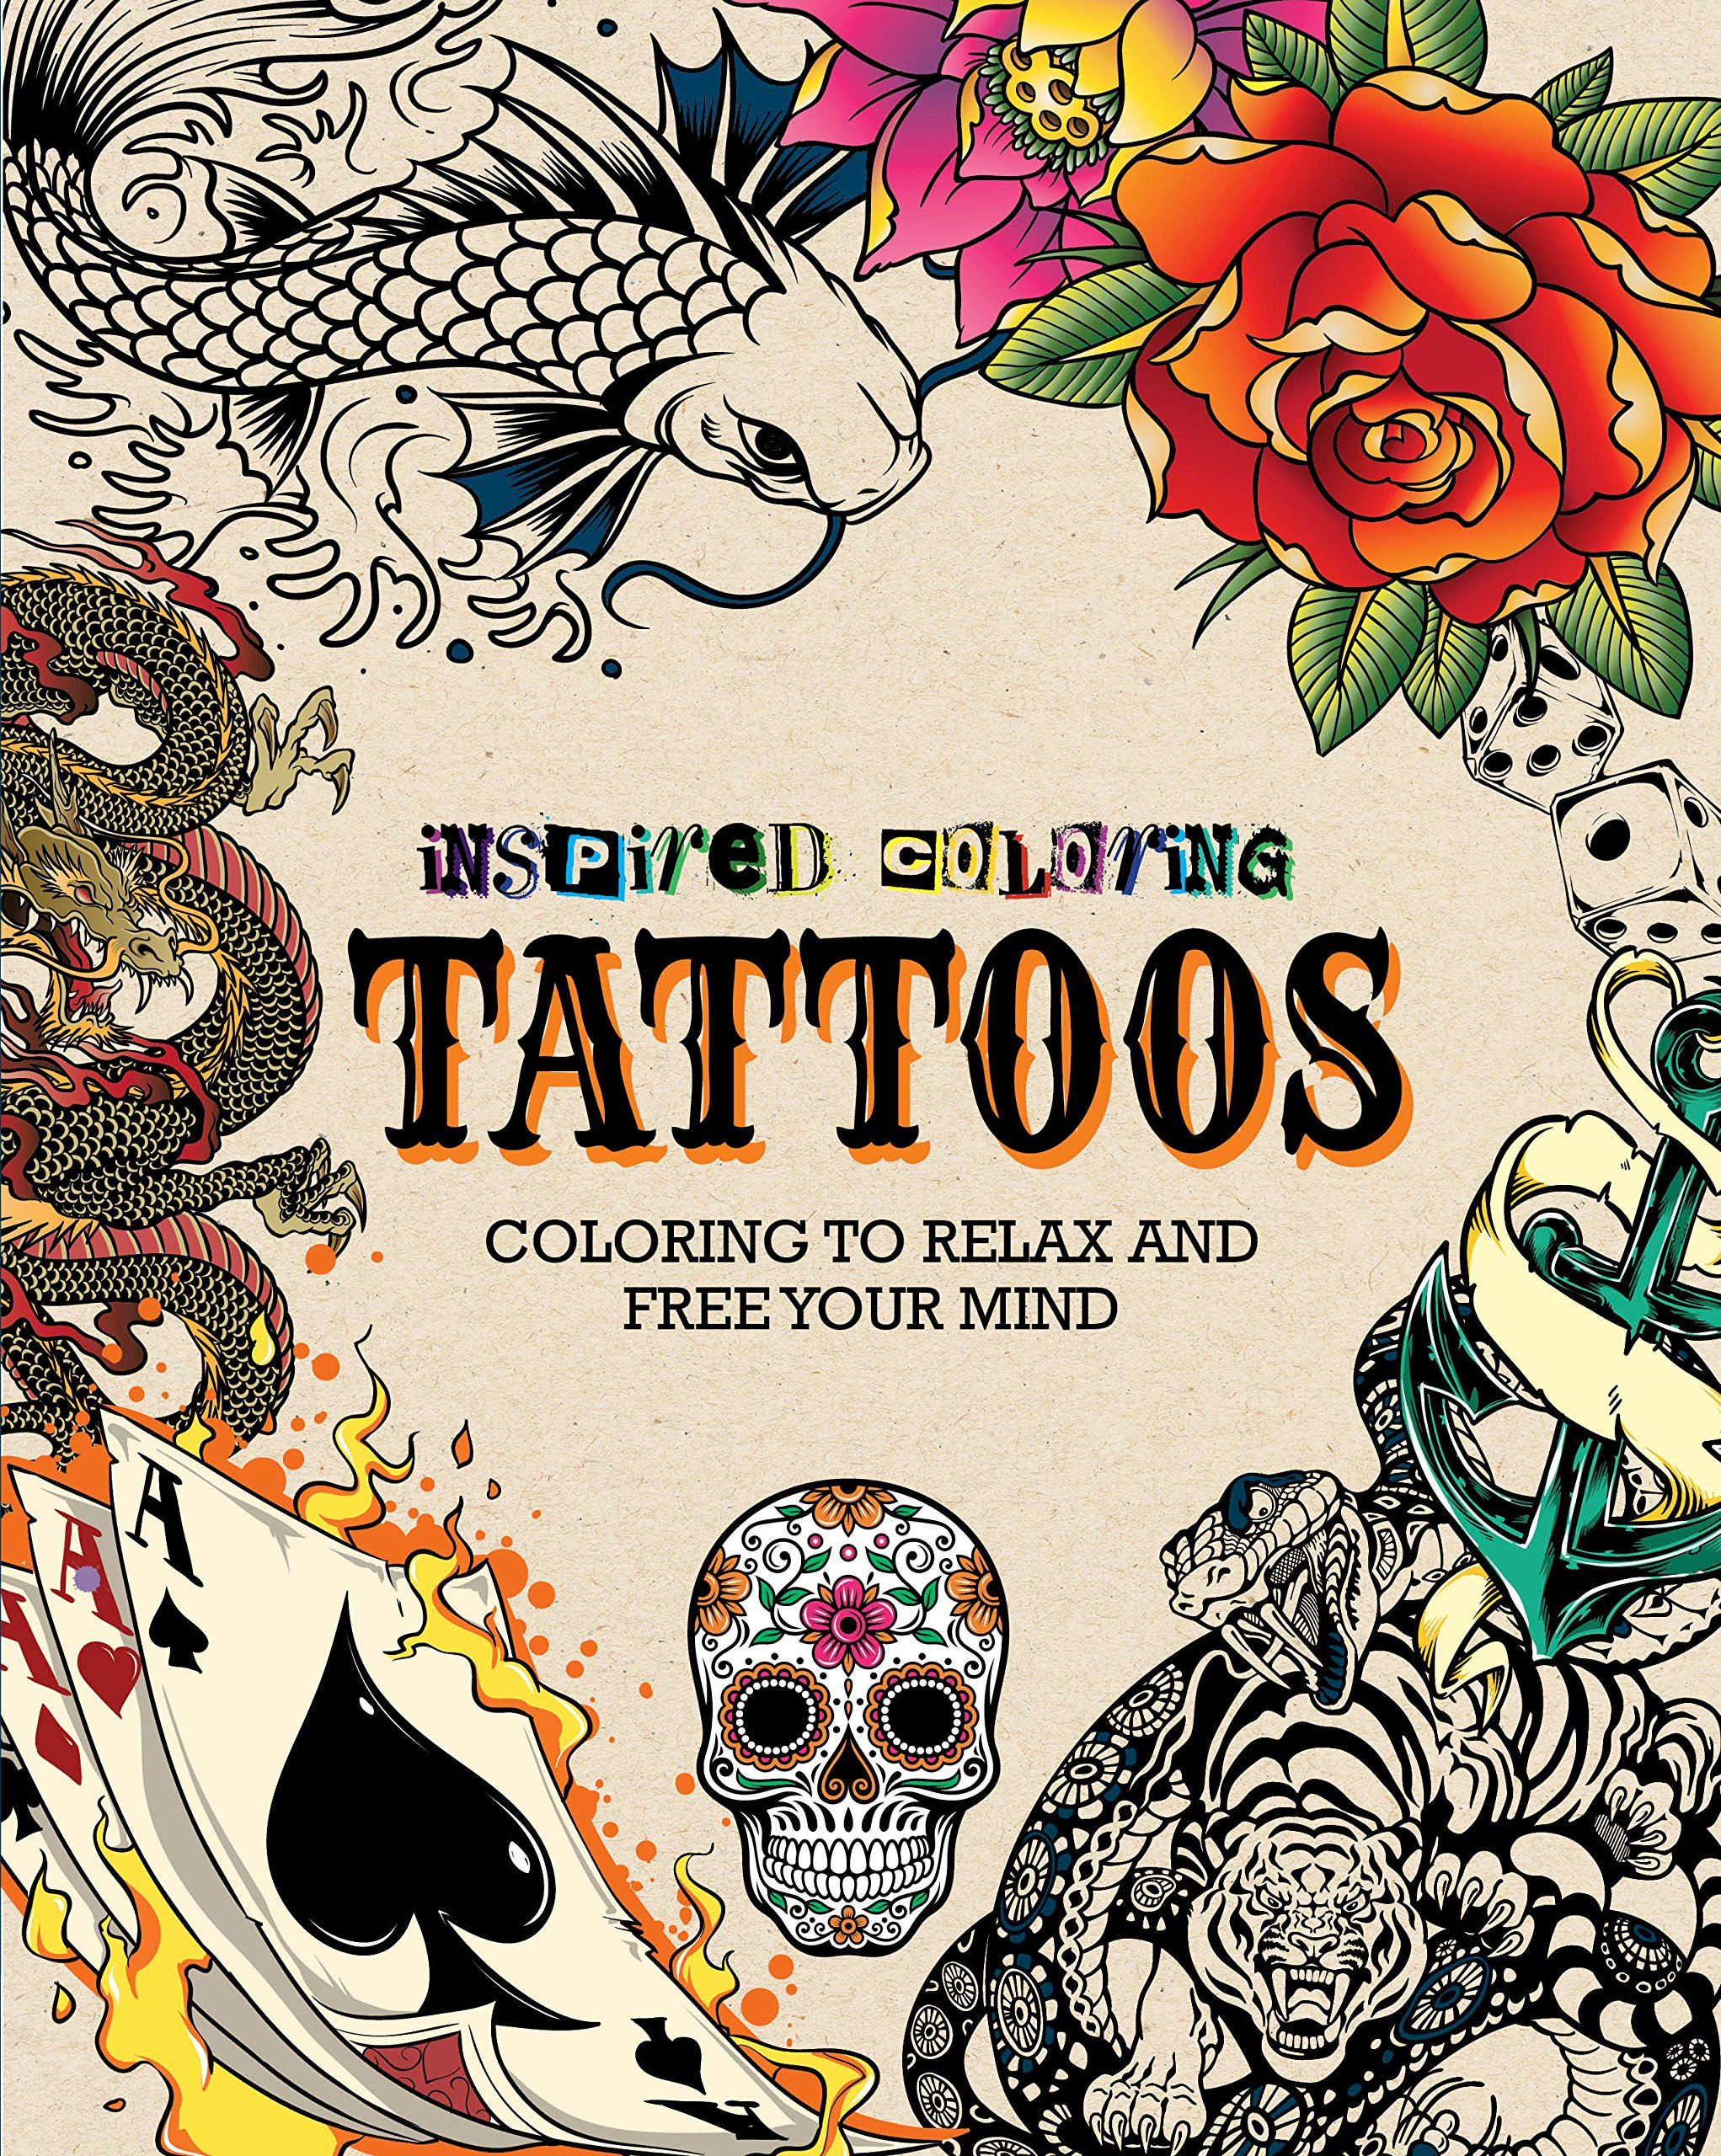 Inspired coloring tattoos adult coloring book